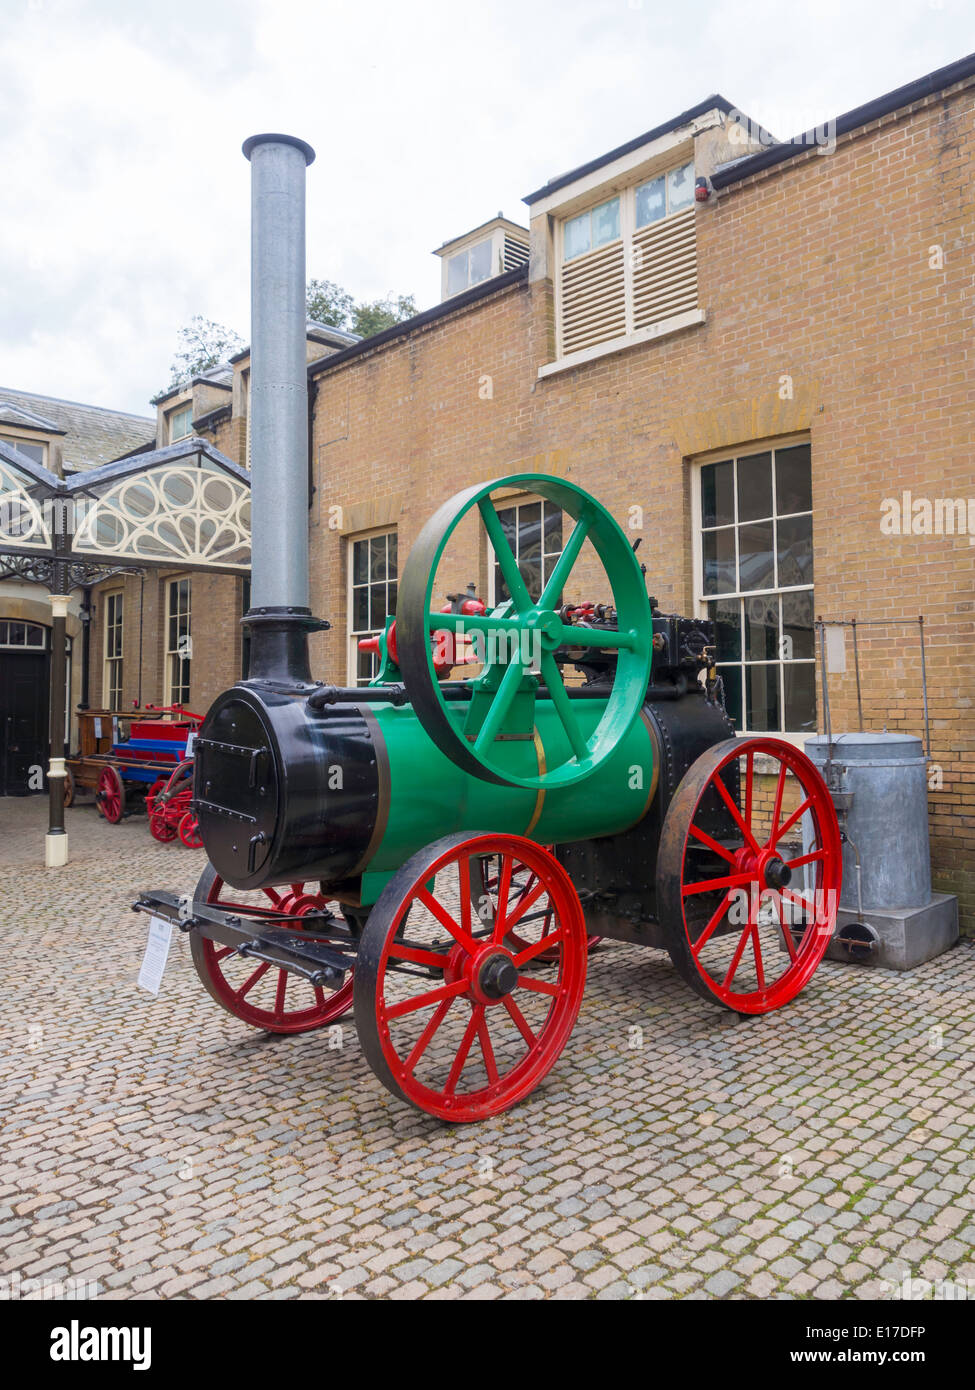 A portable steam engine built 1925 by Farmers Foundry Co. at the Bygones Museum at Holkham Hall Norfolk England UK - Stock Image